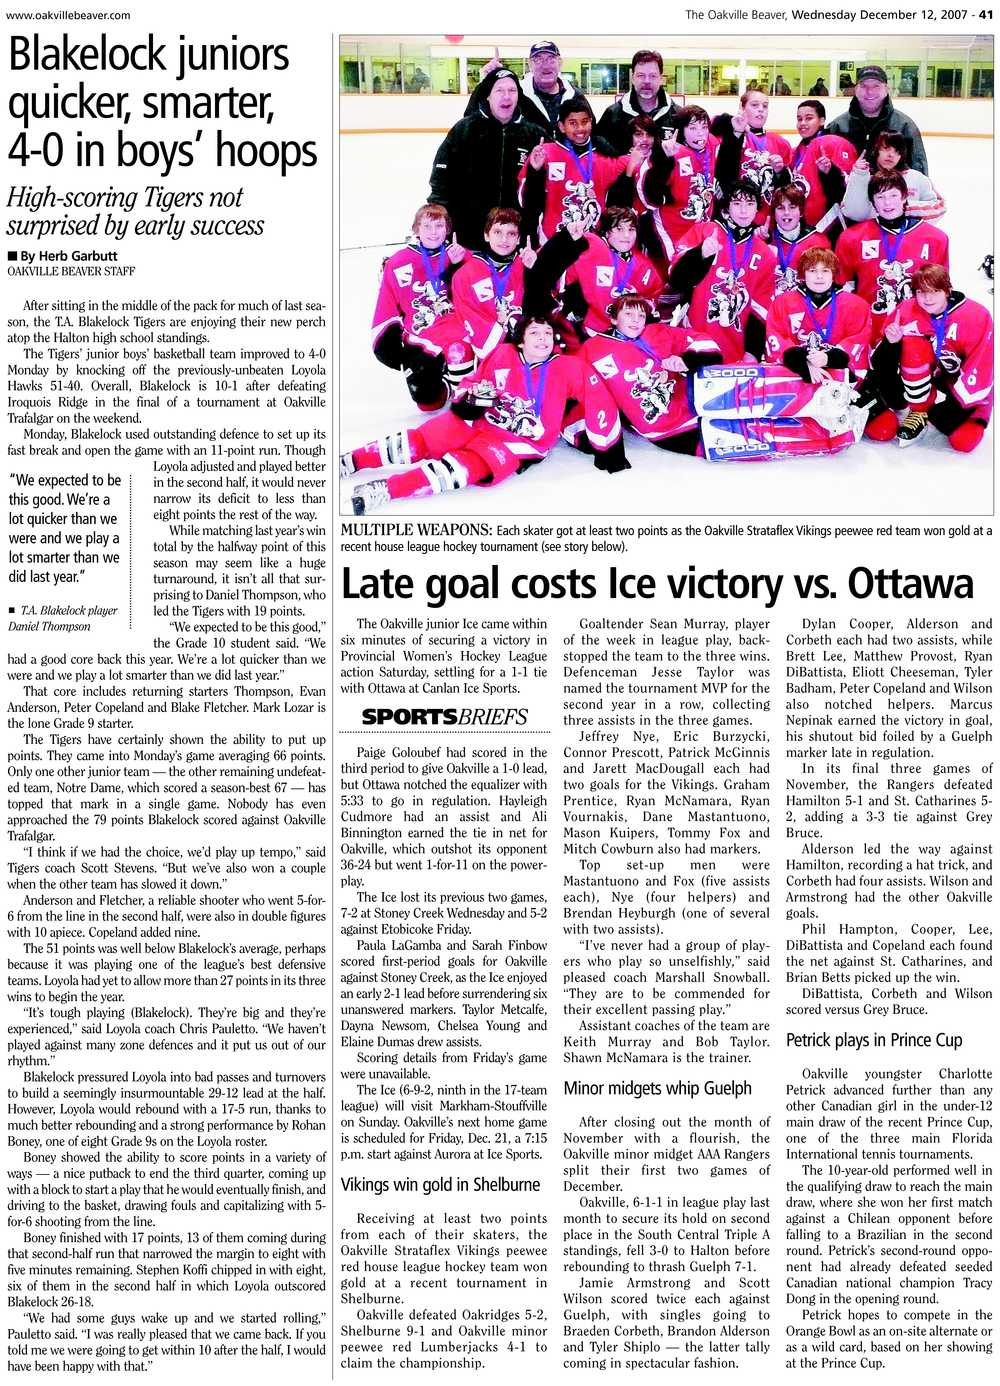 Late goal costs Ice victory vs. Ottawa